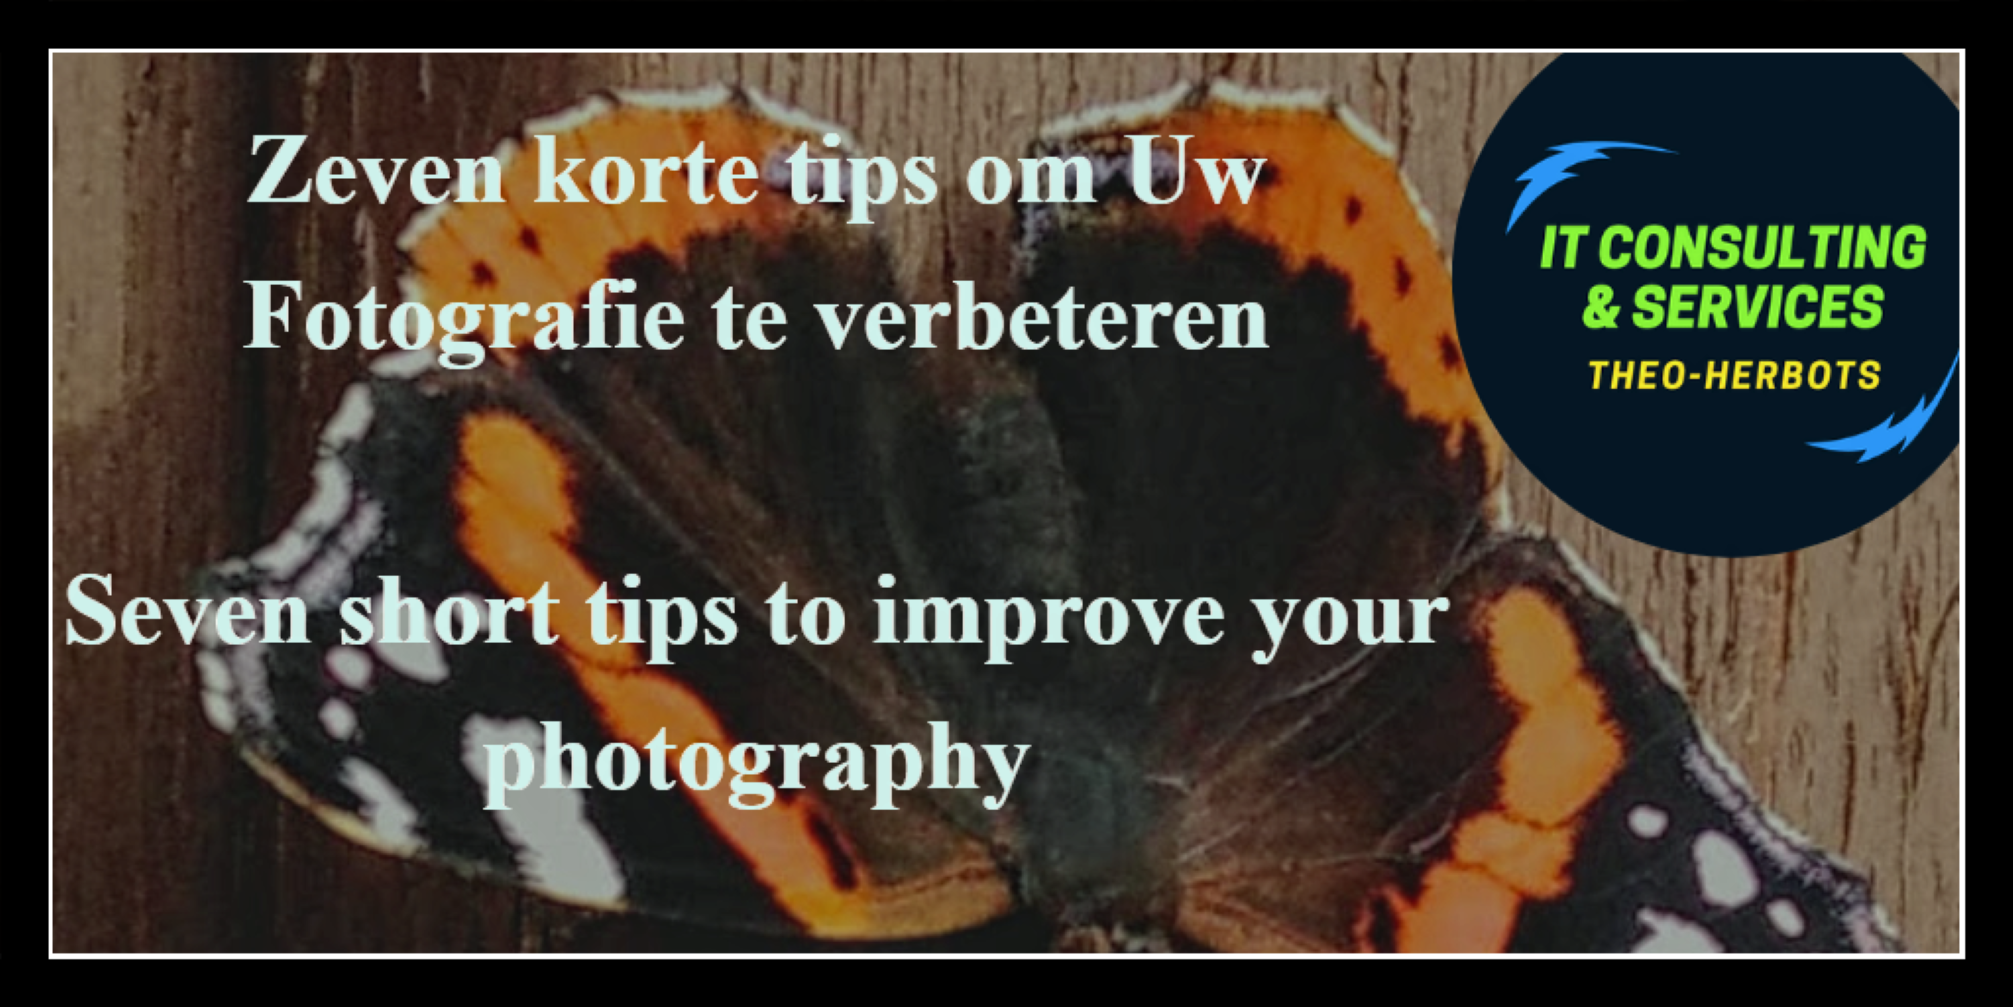 Seven short tips to improve your photography || Zeven korte tips om Uw Fotografie te verbeteren